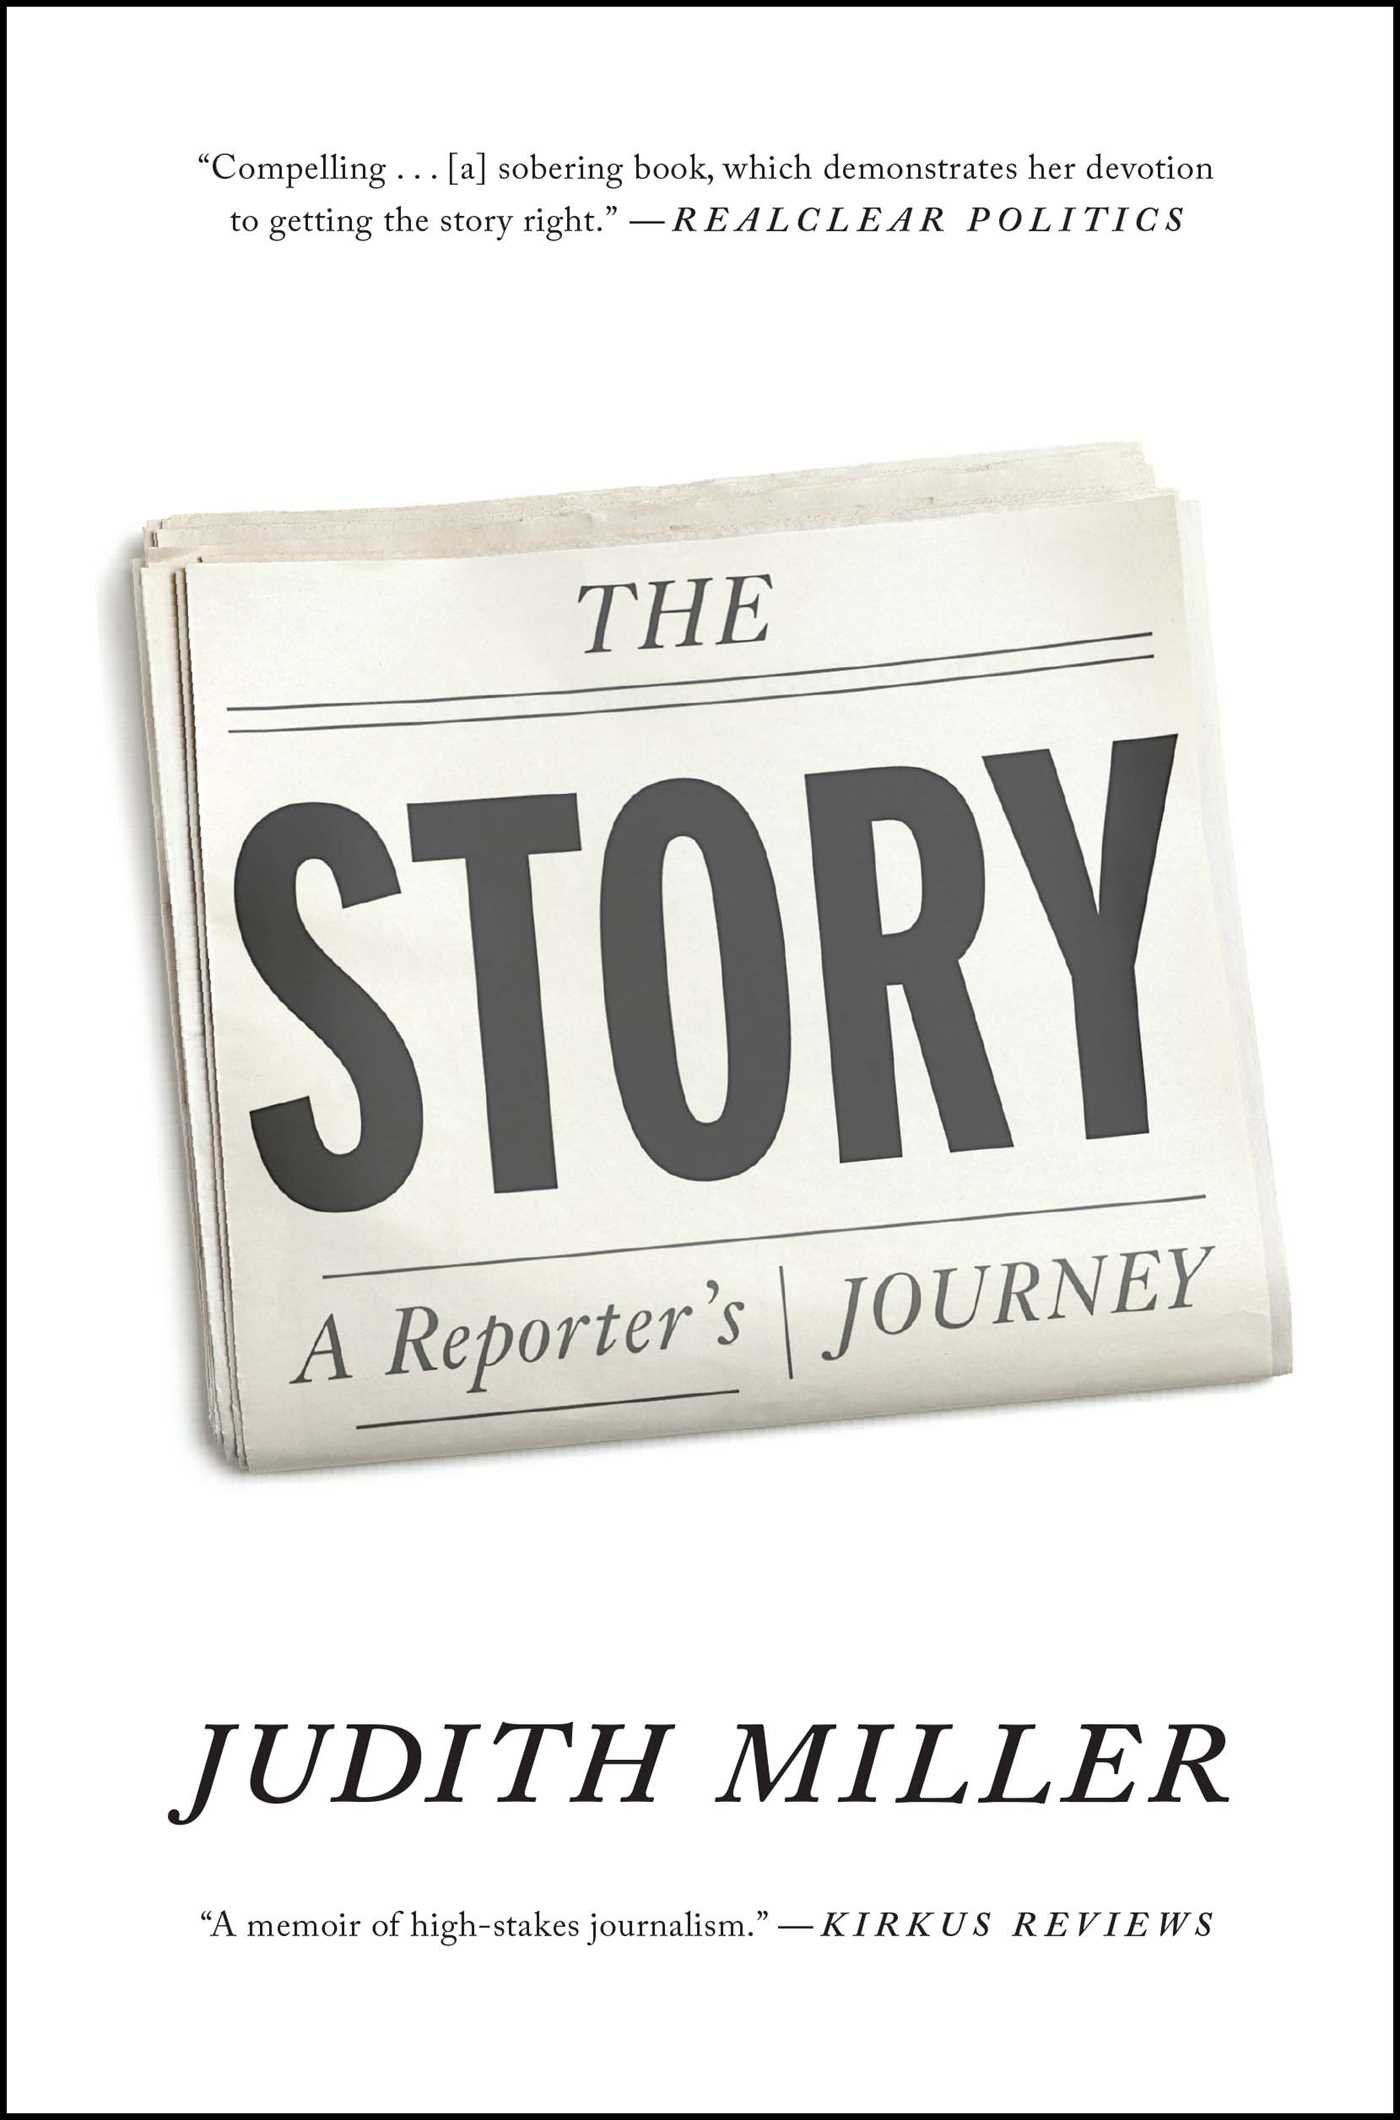 064e1c65 The Story: A Reporter's Journey: Judith Miller: 9781476716022 ...